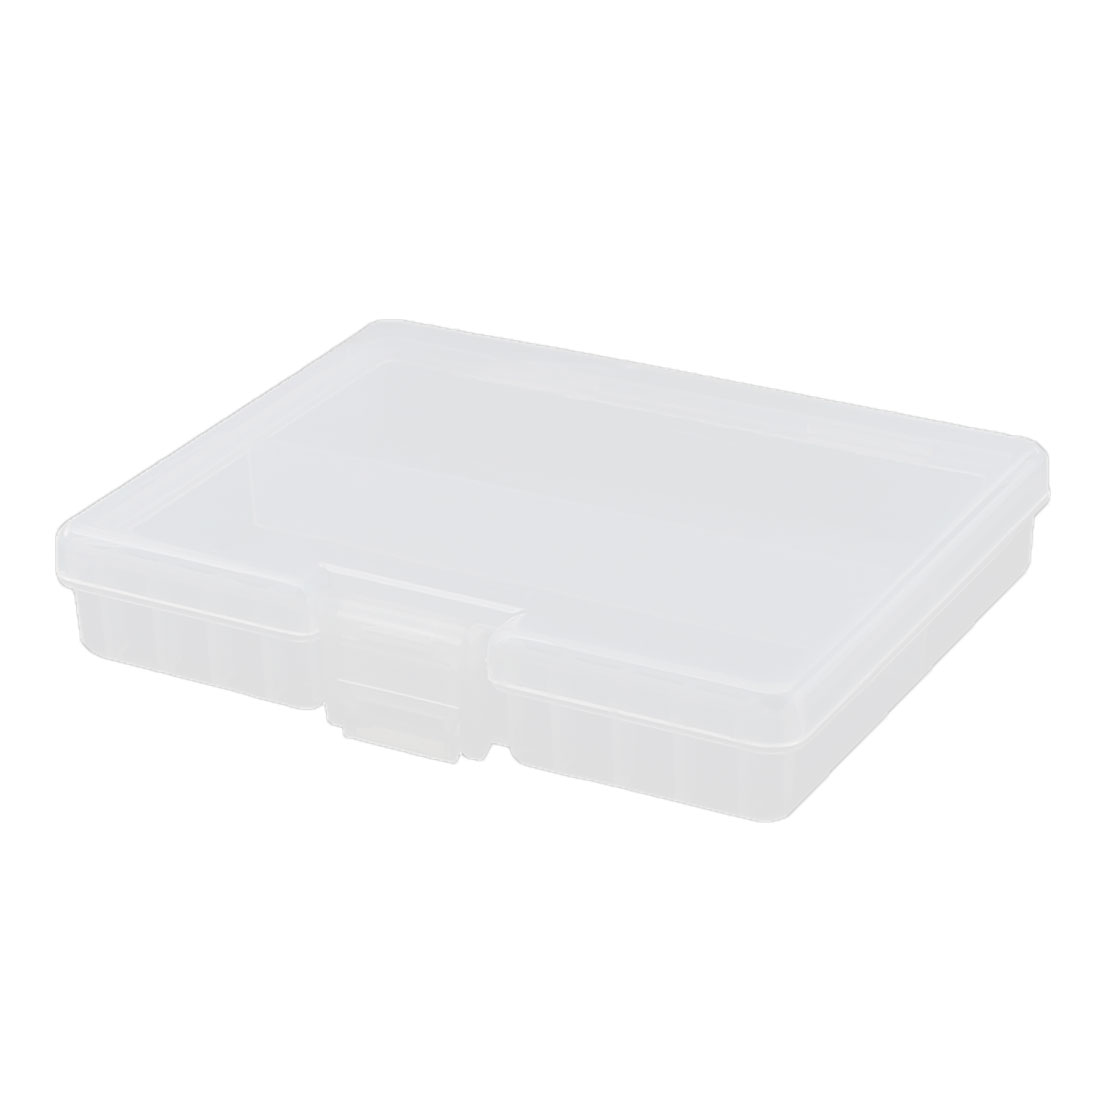 Plastic Battery Case Box Holder Storage Container for 48 x AA Cells Batteries